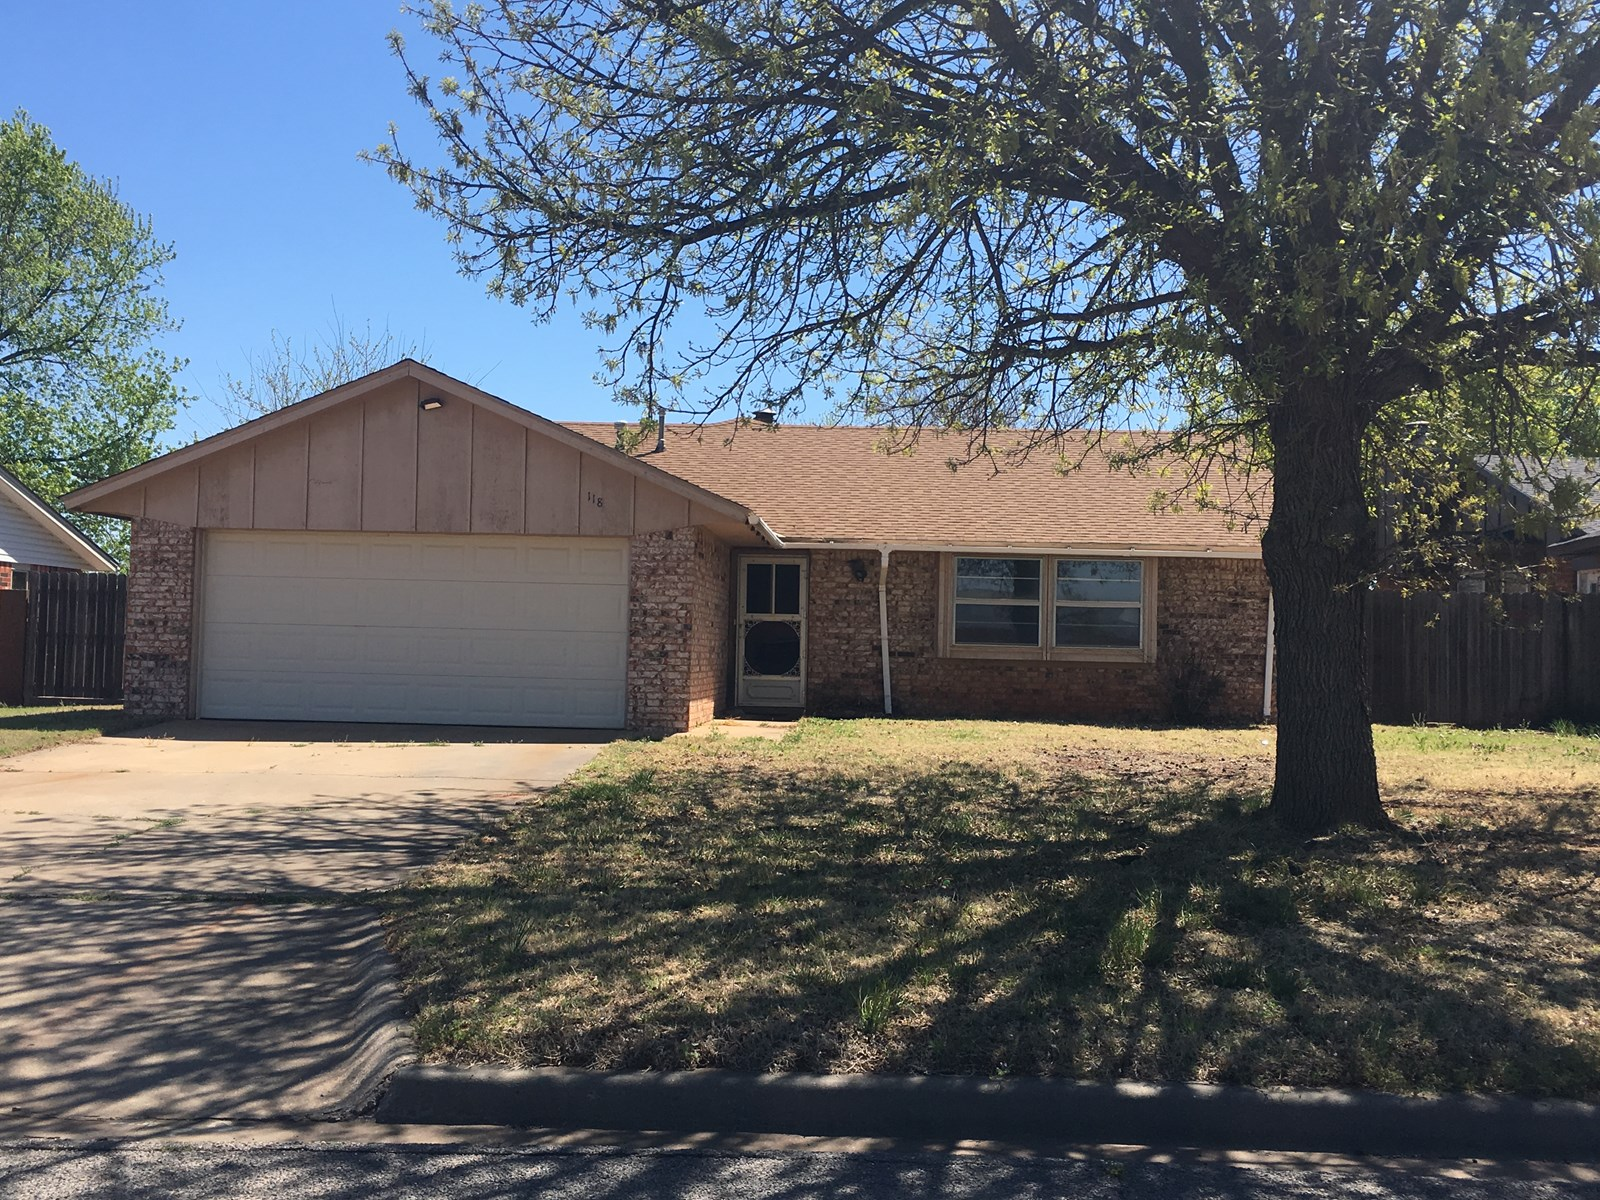 3 BEDROOM 2 BATH HOME IN GREAT LOCATION